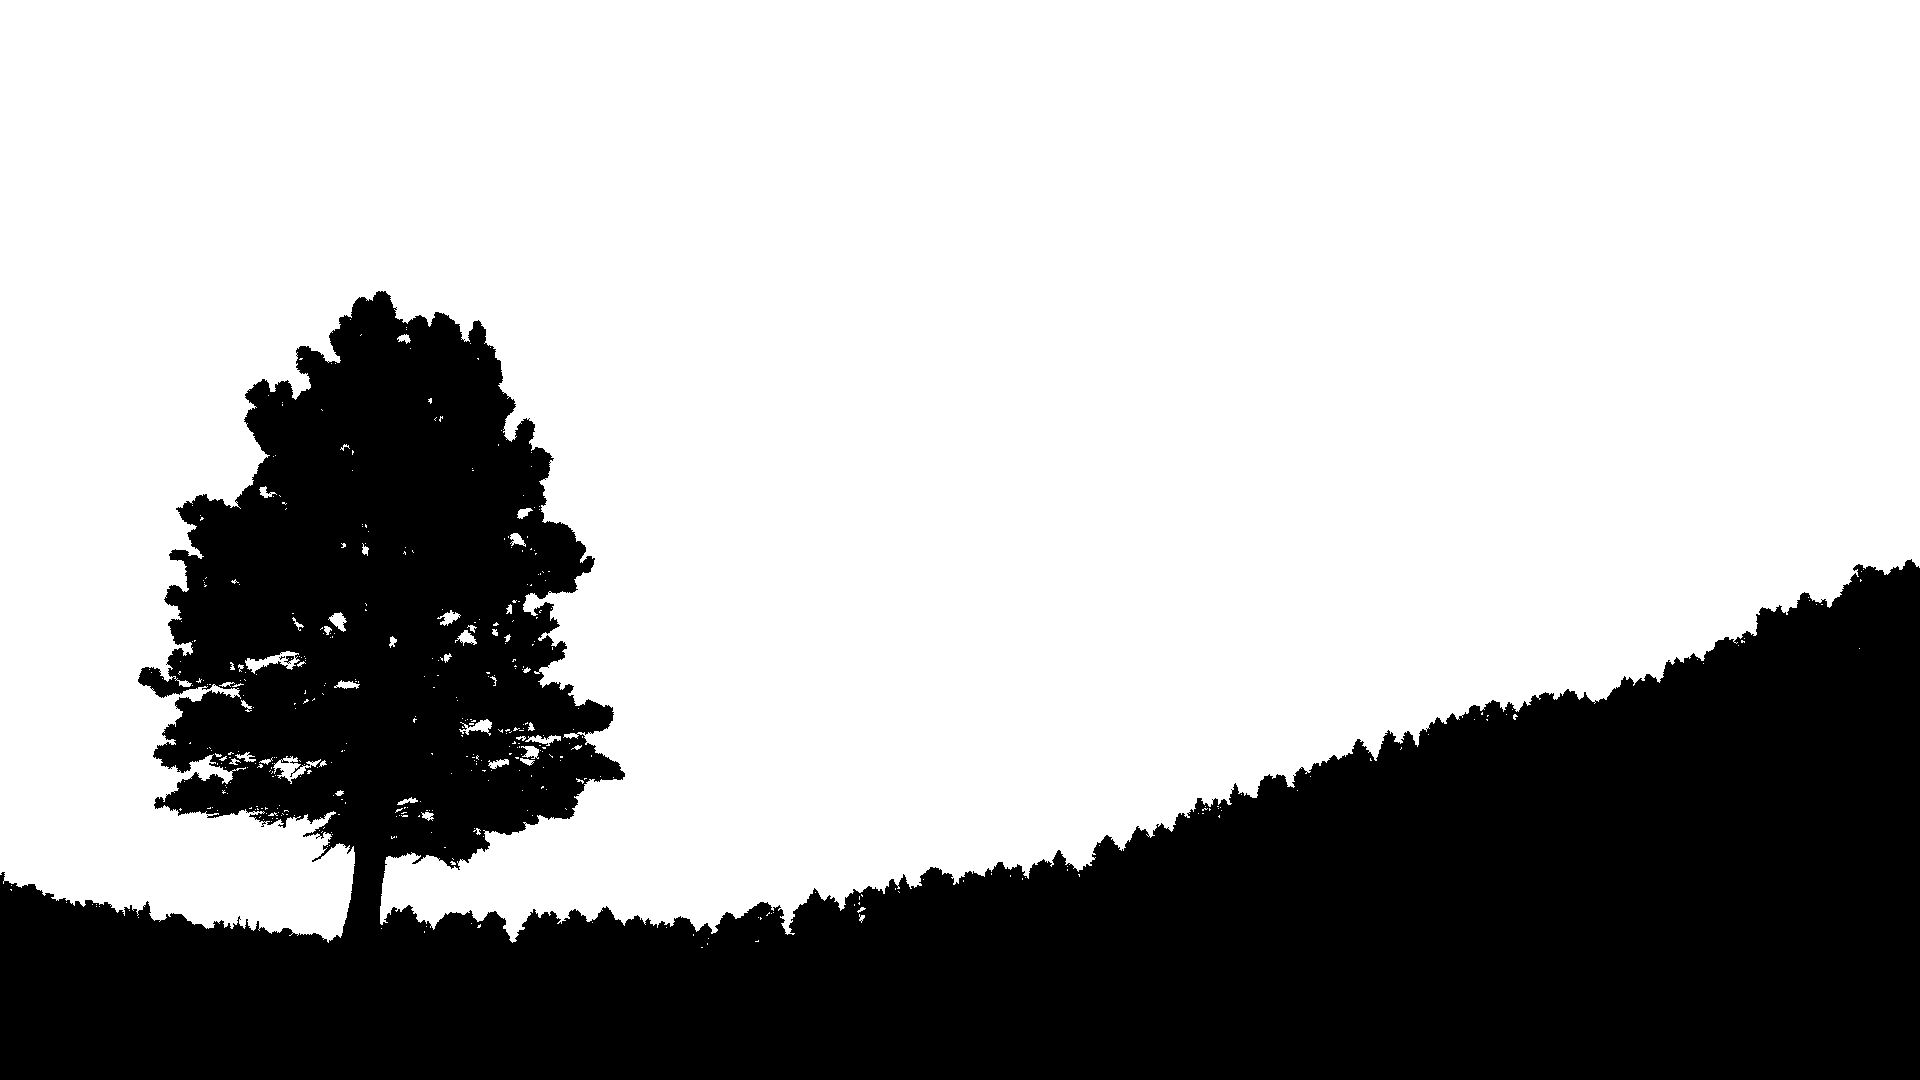 image freeuse library Hill silhouette at getdrawings. Rolling hills clipart black and white